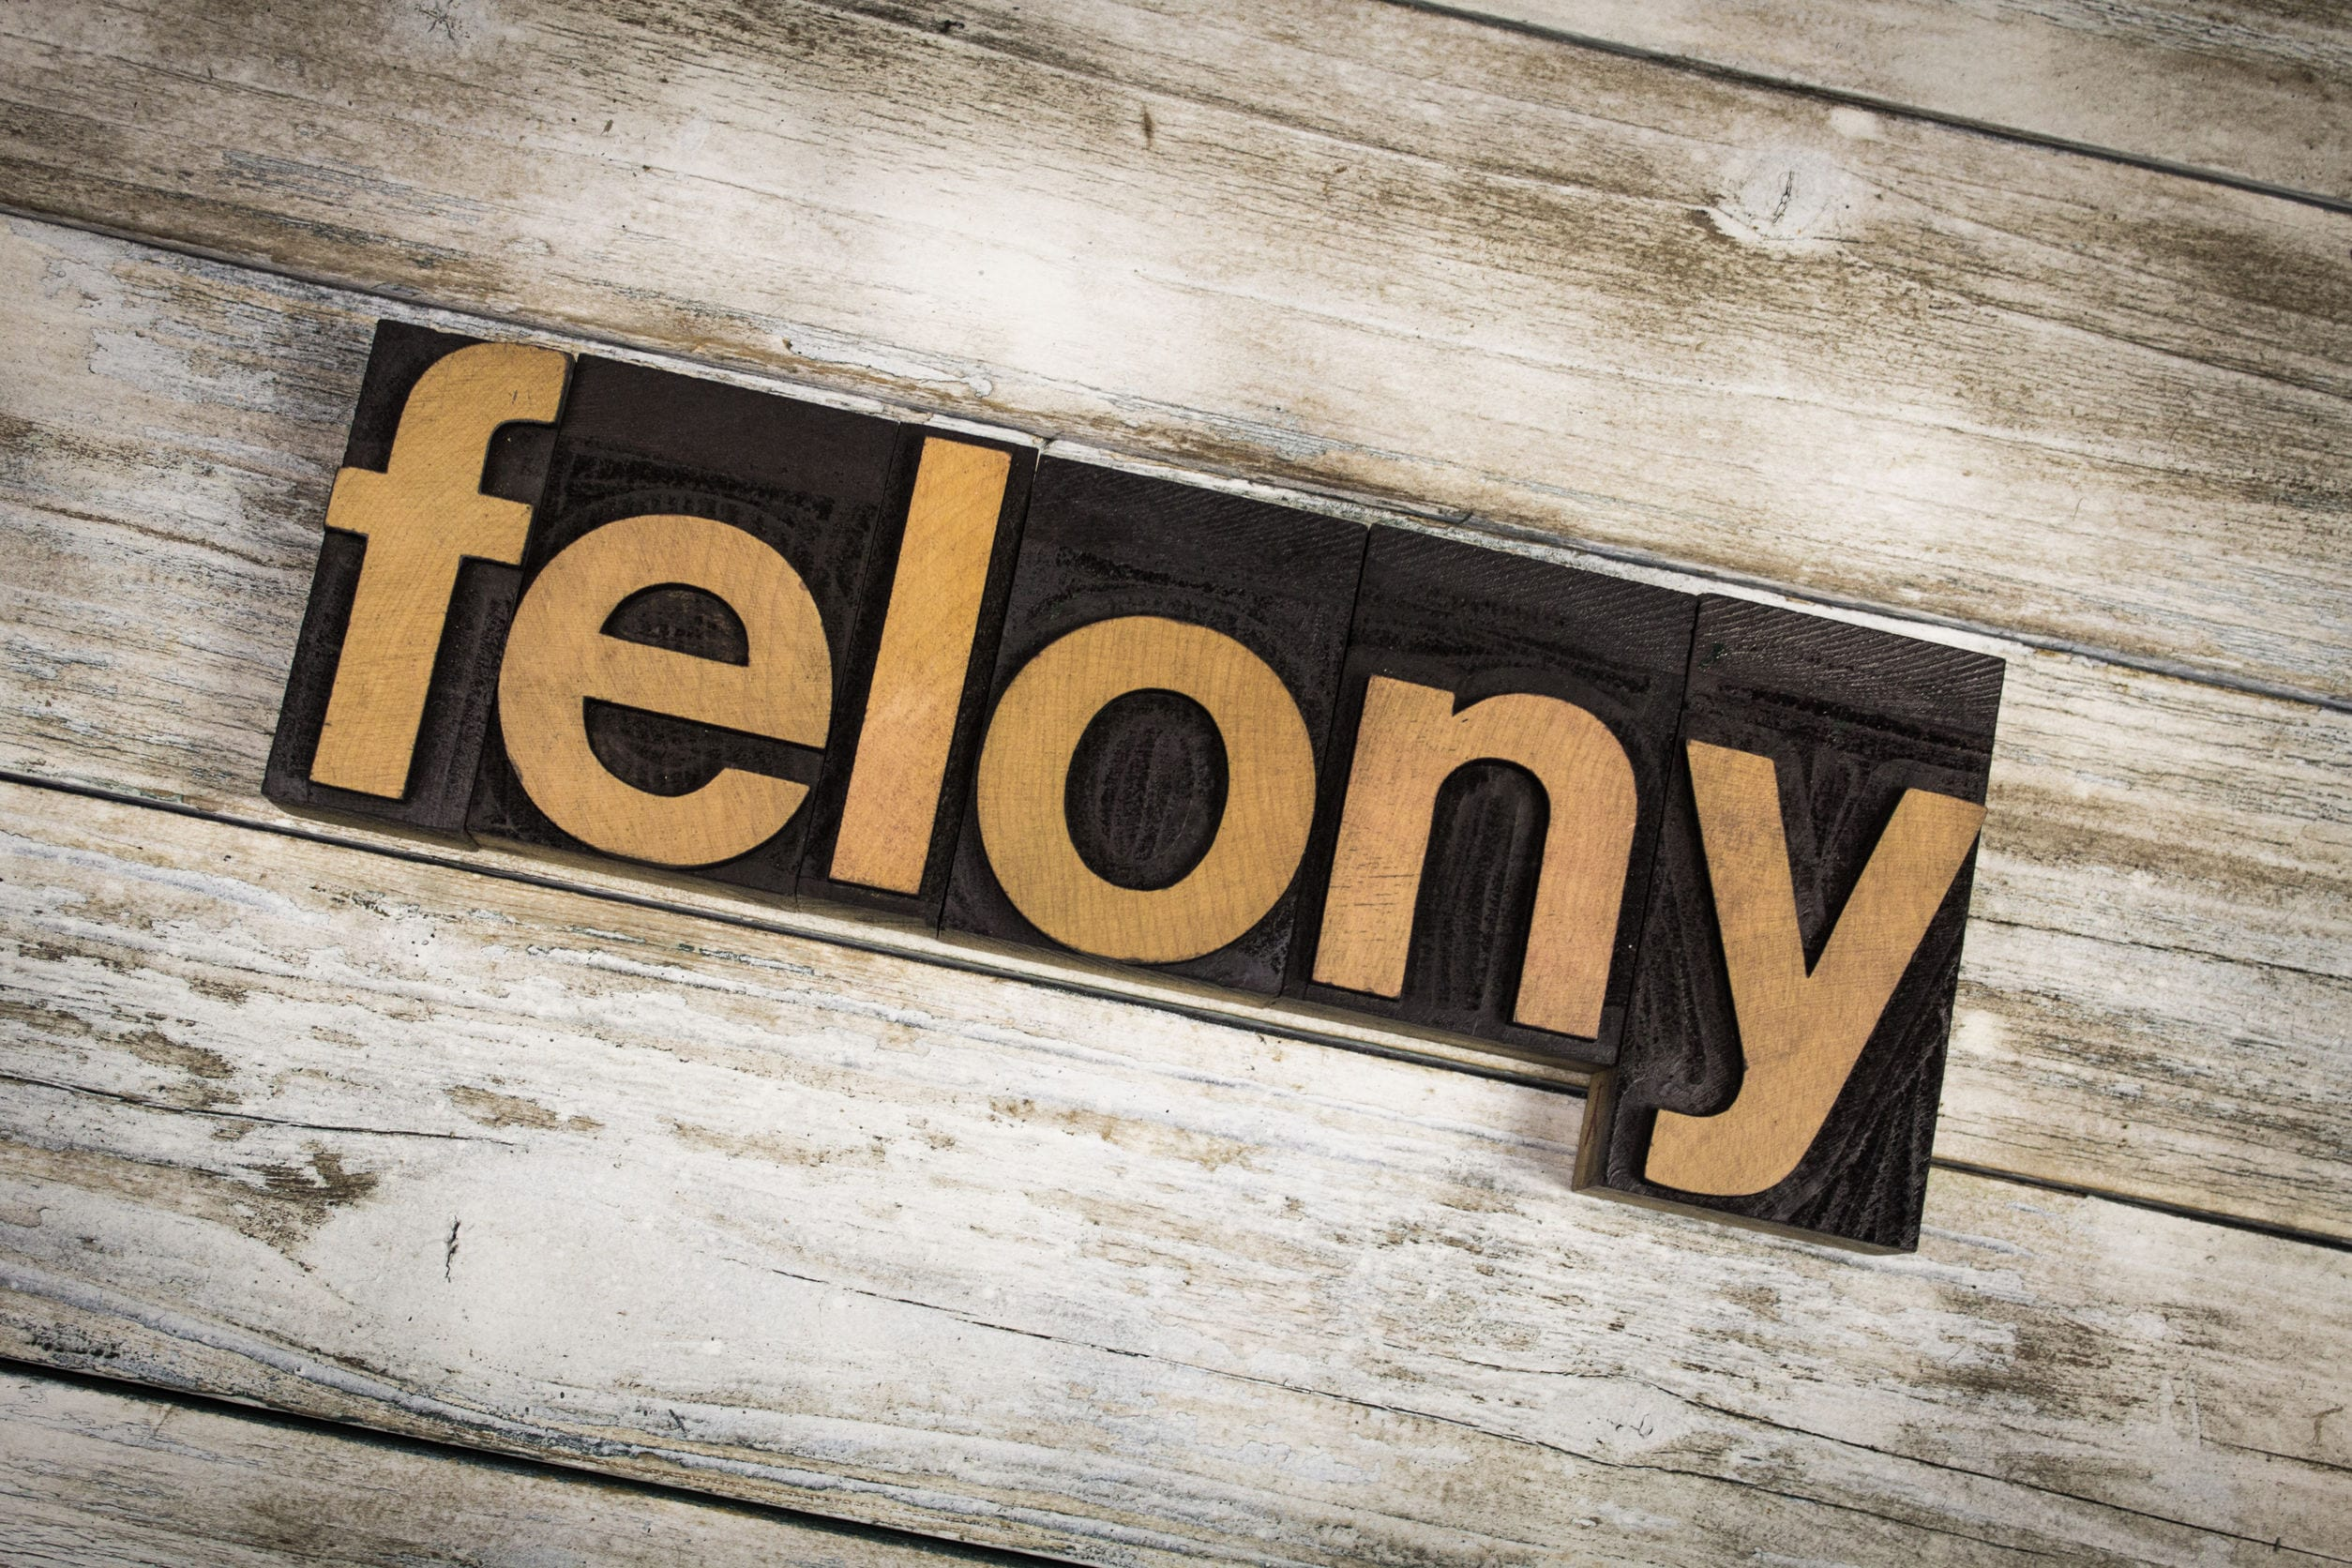 A Breakdown of Illinois Felony Charges and Penalties